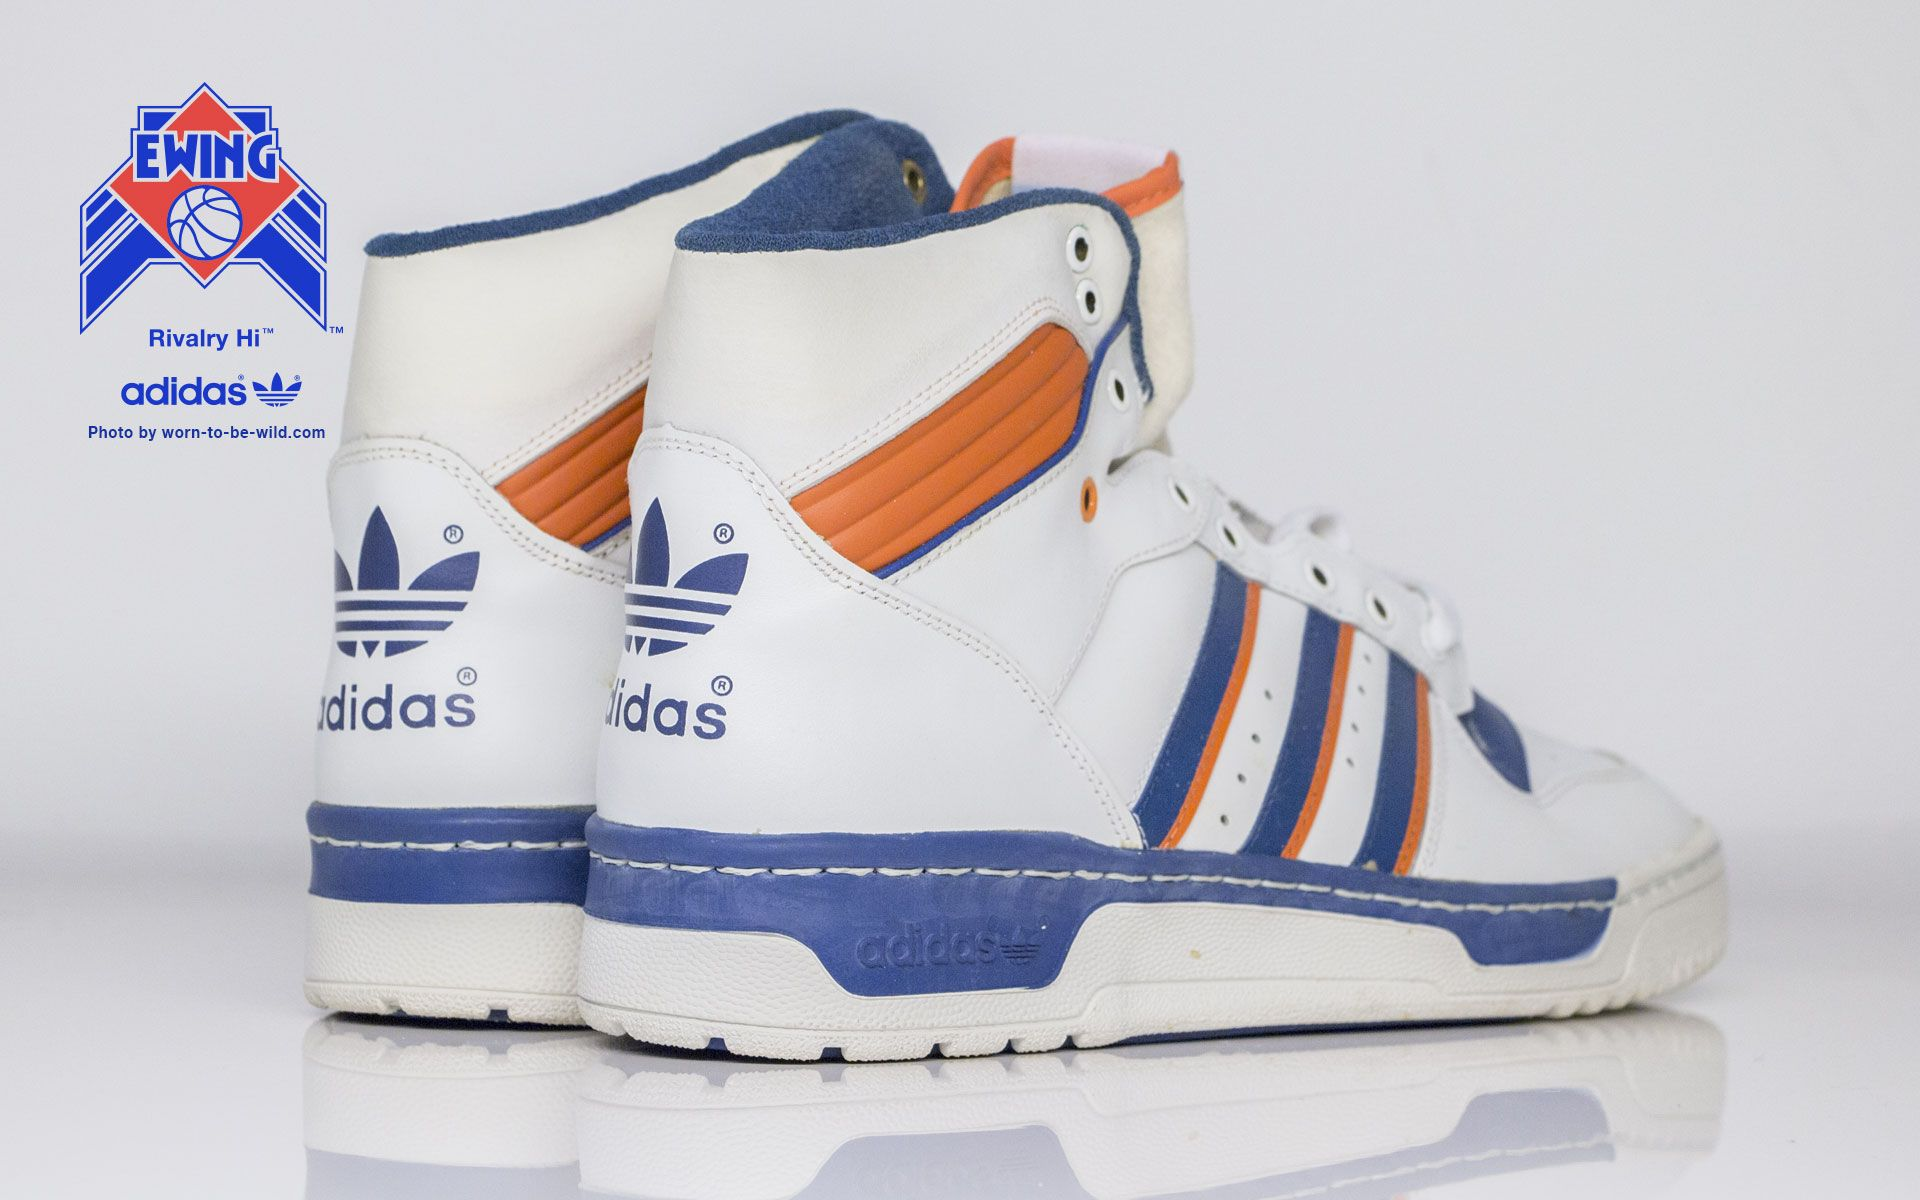 ed338f35cc132 WORN TO BE WILD » Adidas Rivalry Hi Ewing New York Knicks | High Top ...